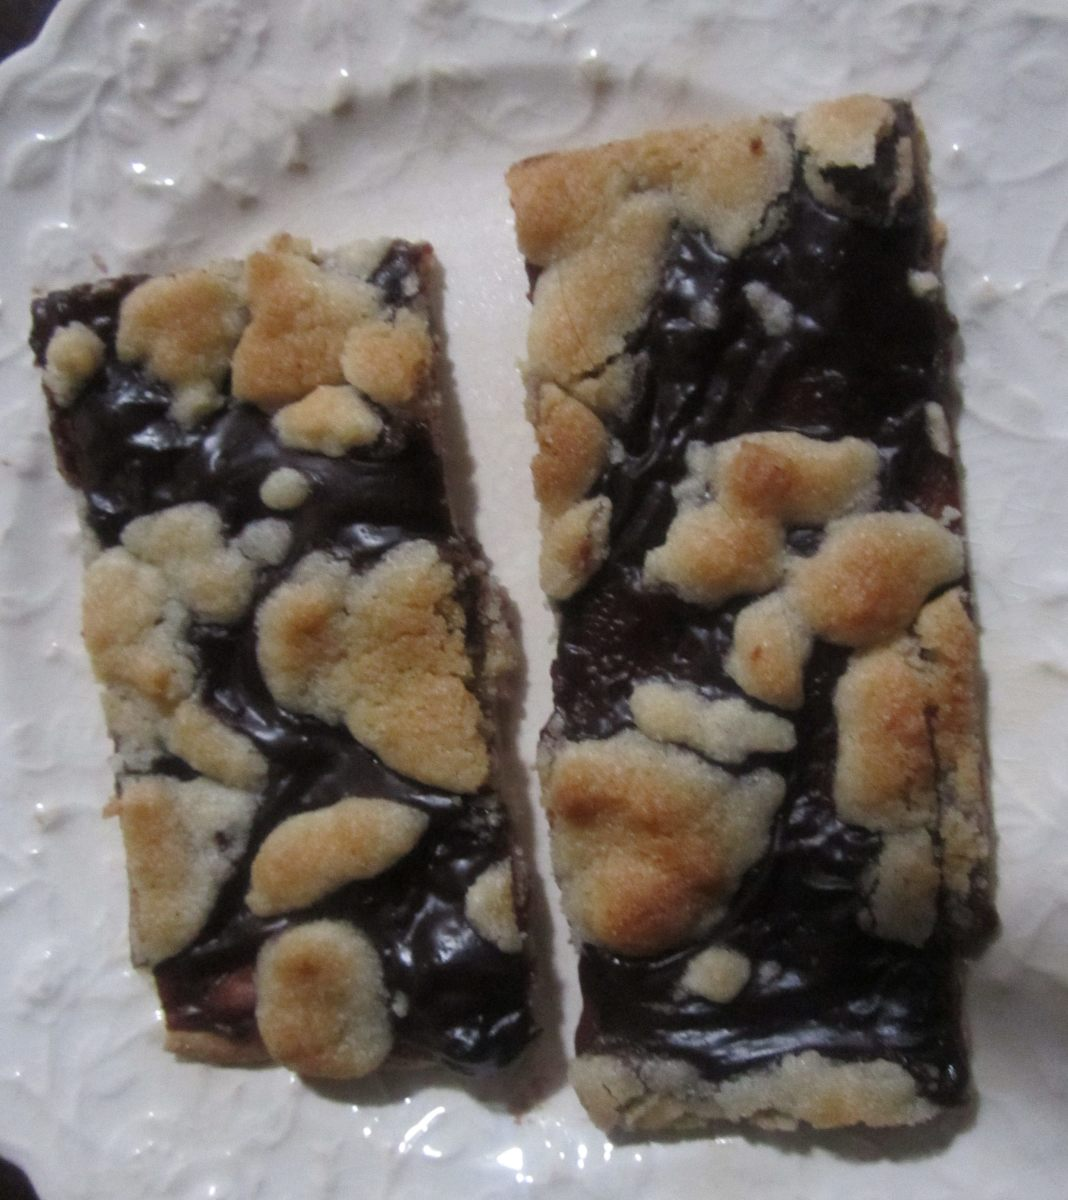 Pieces of chocolate pizza